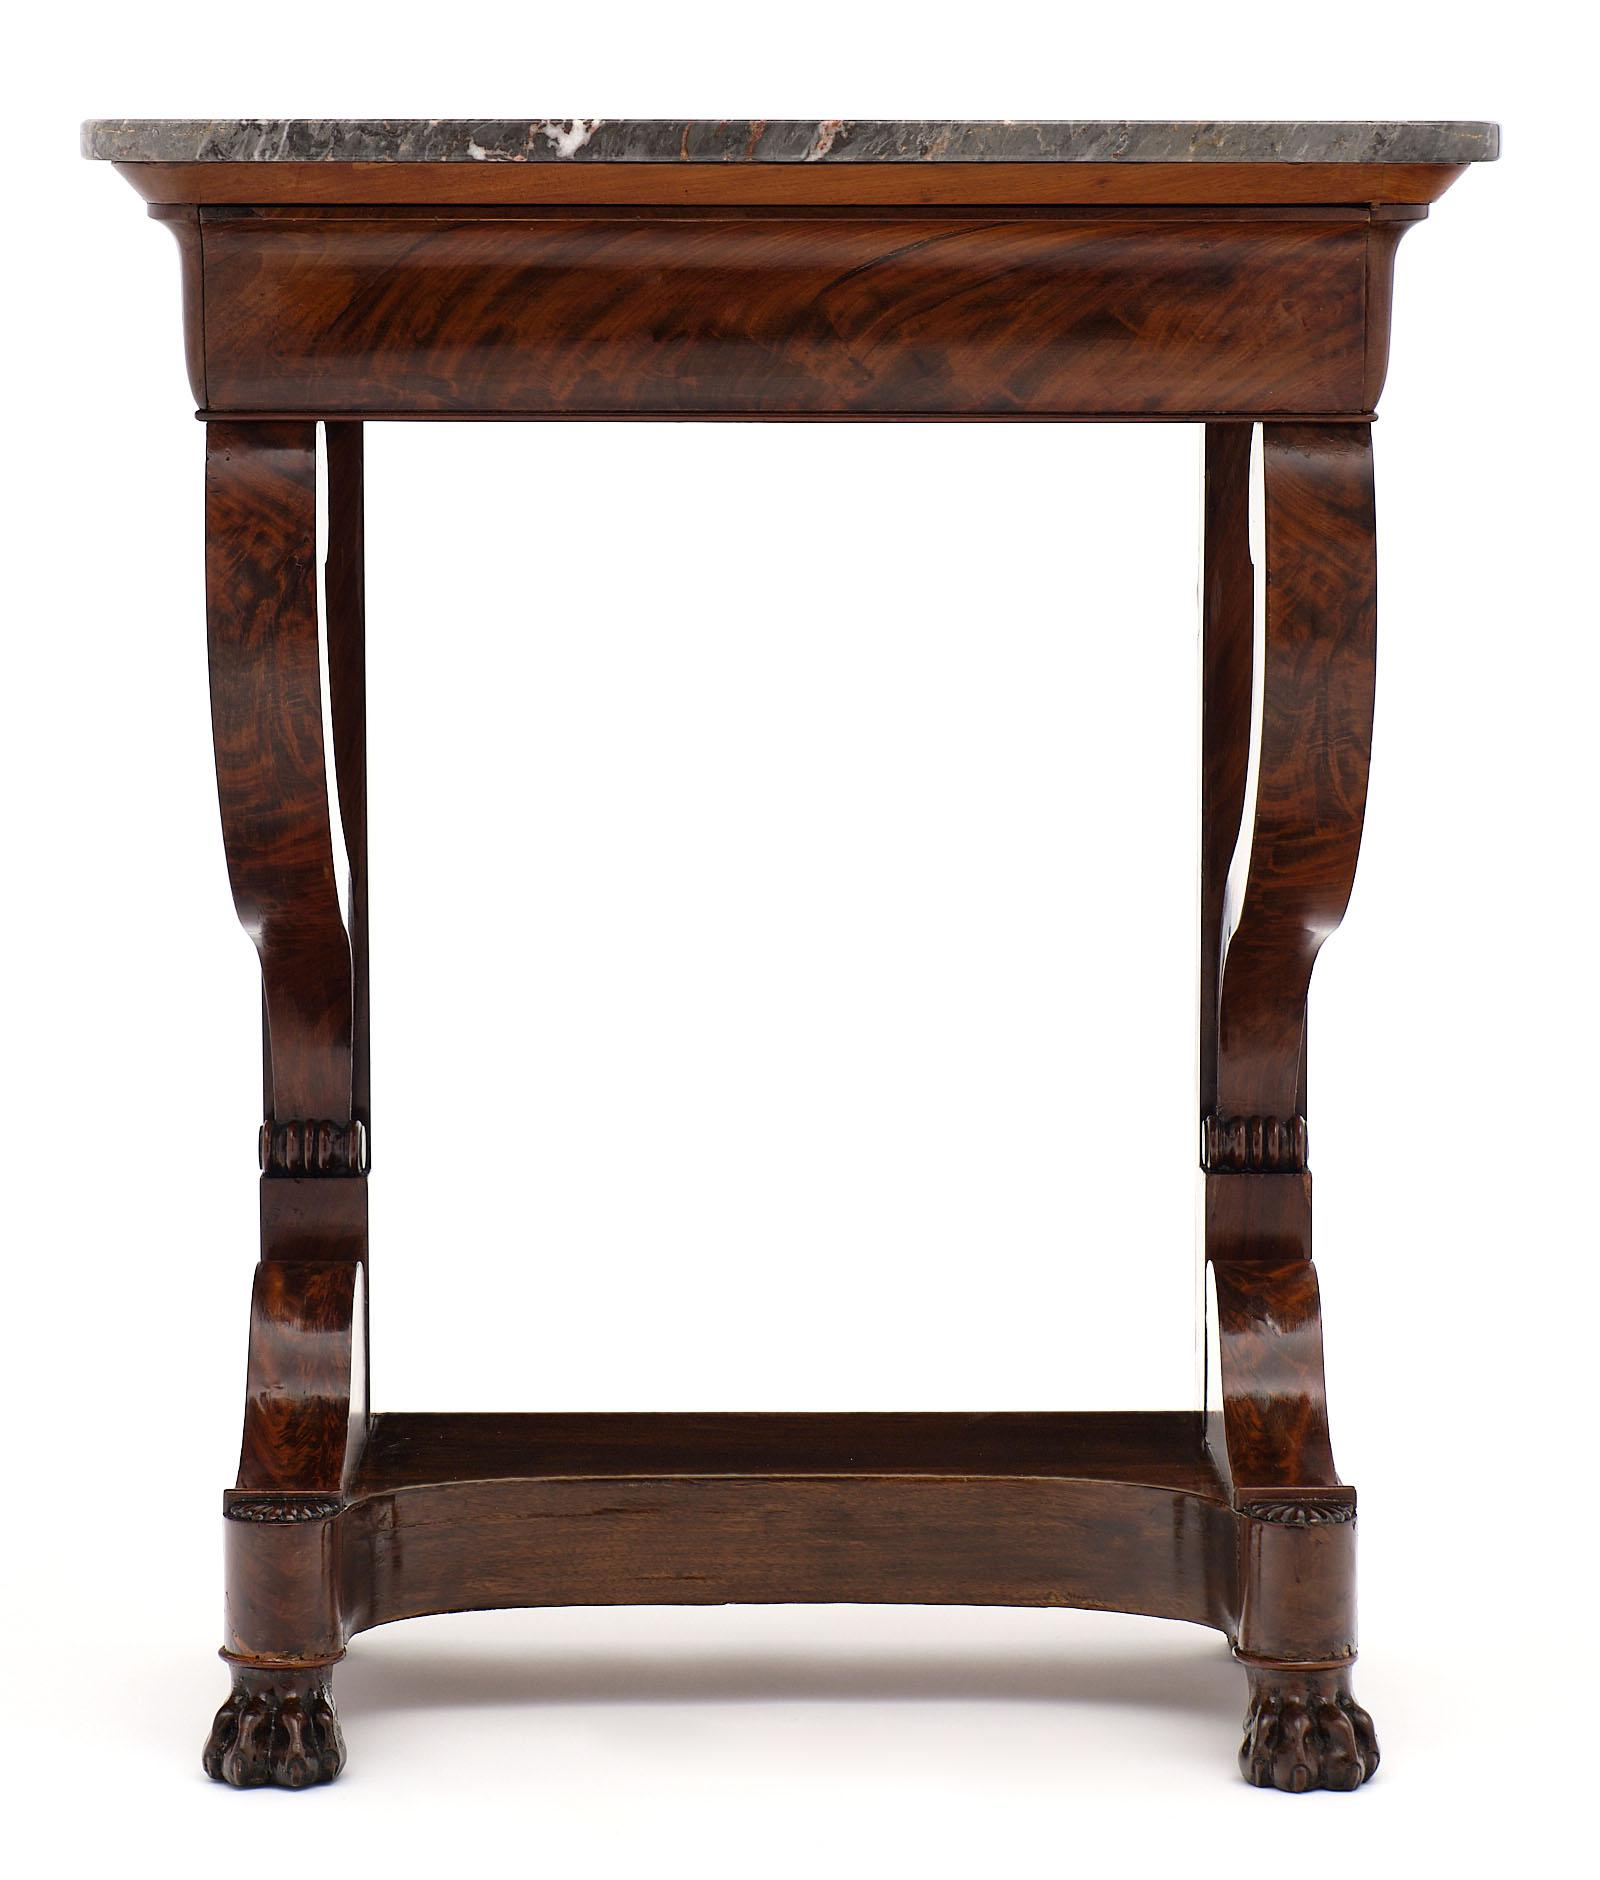 Restauration Period French Antique Console Table